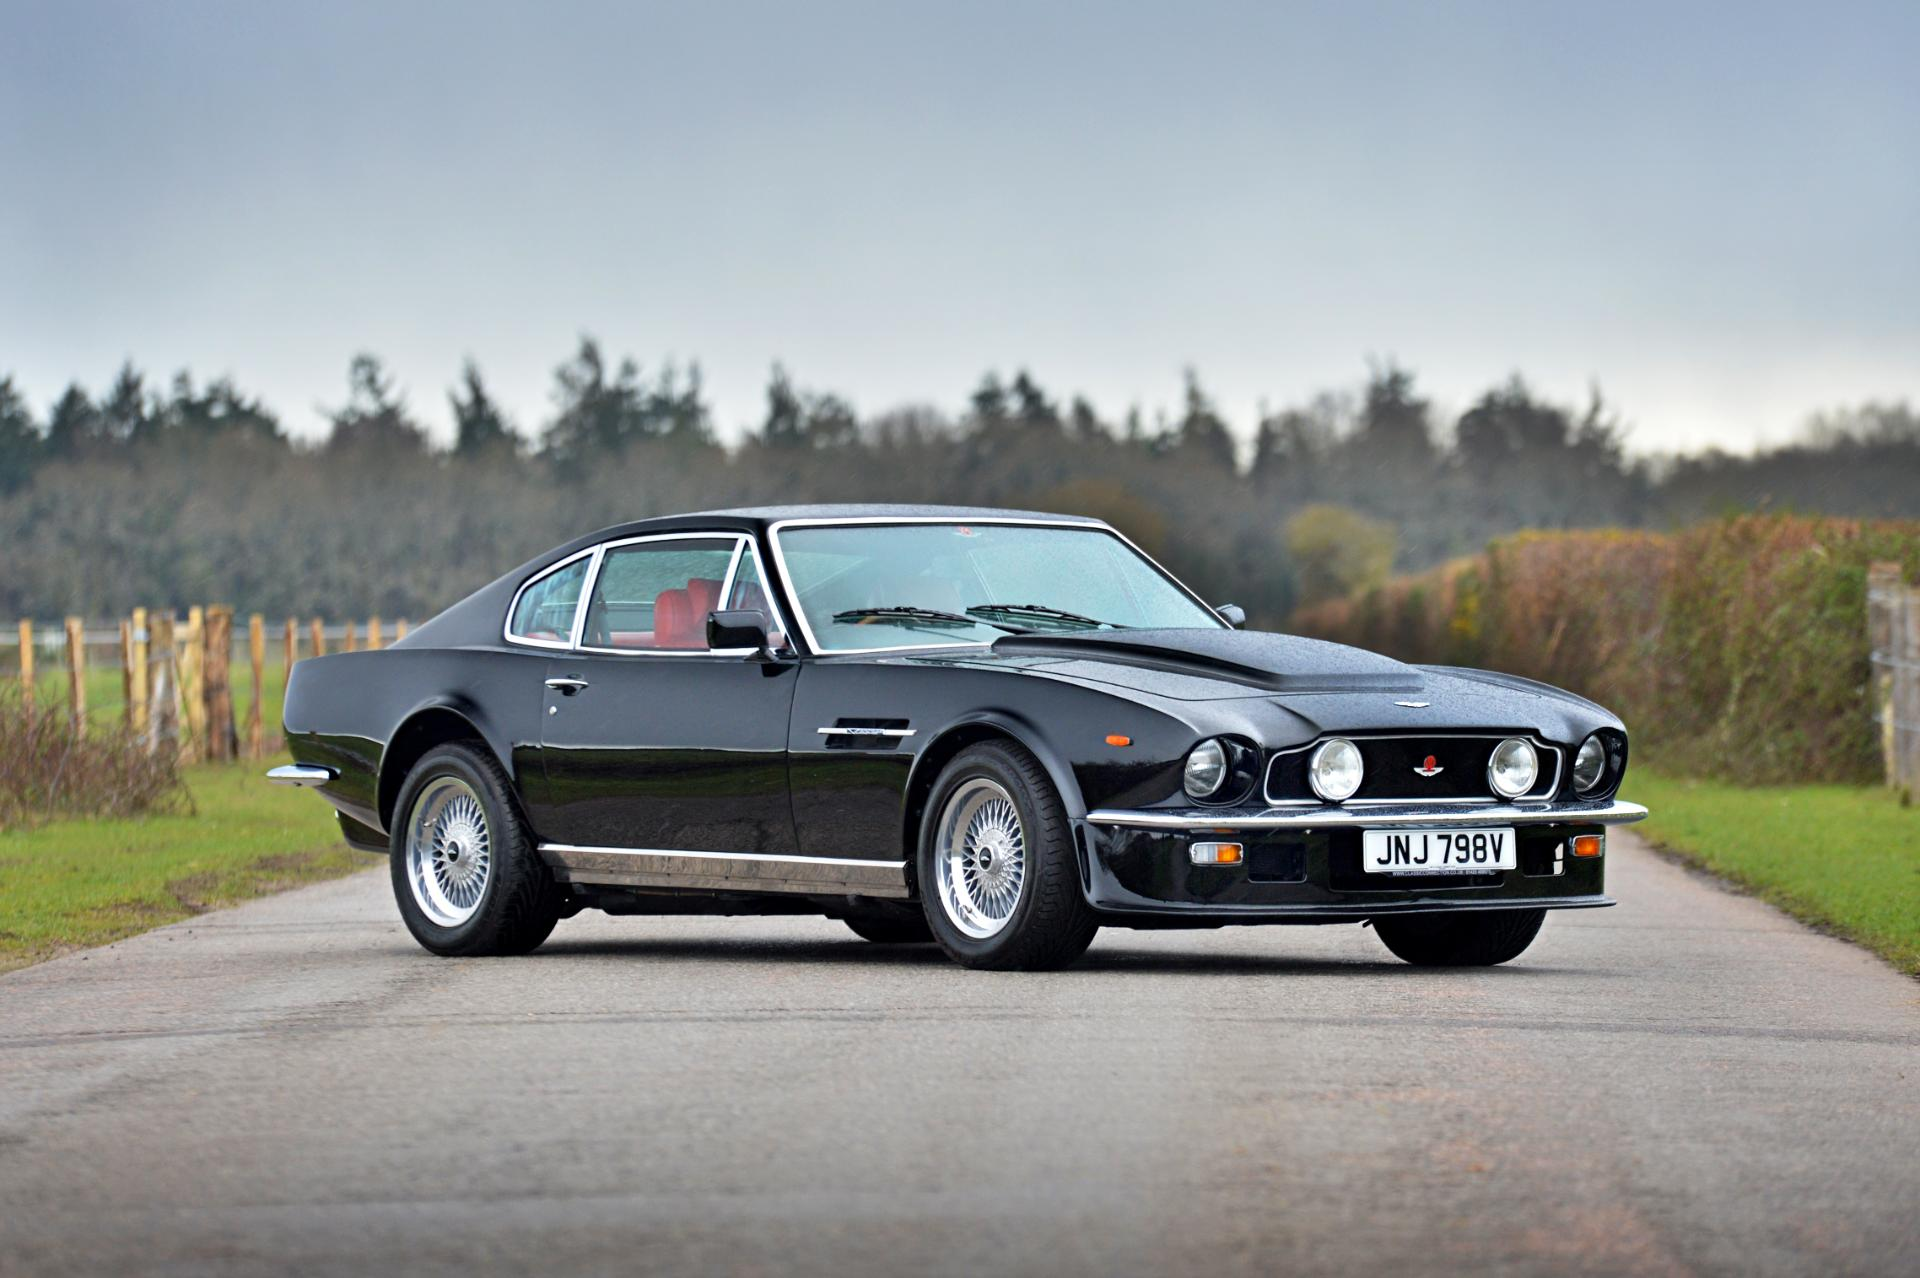 Classic Aston Martin V8 Cars For Sale Ccfs